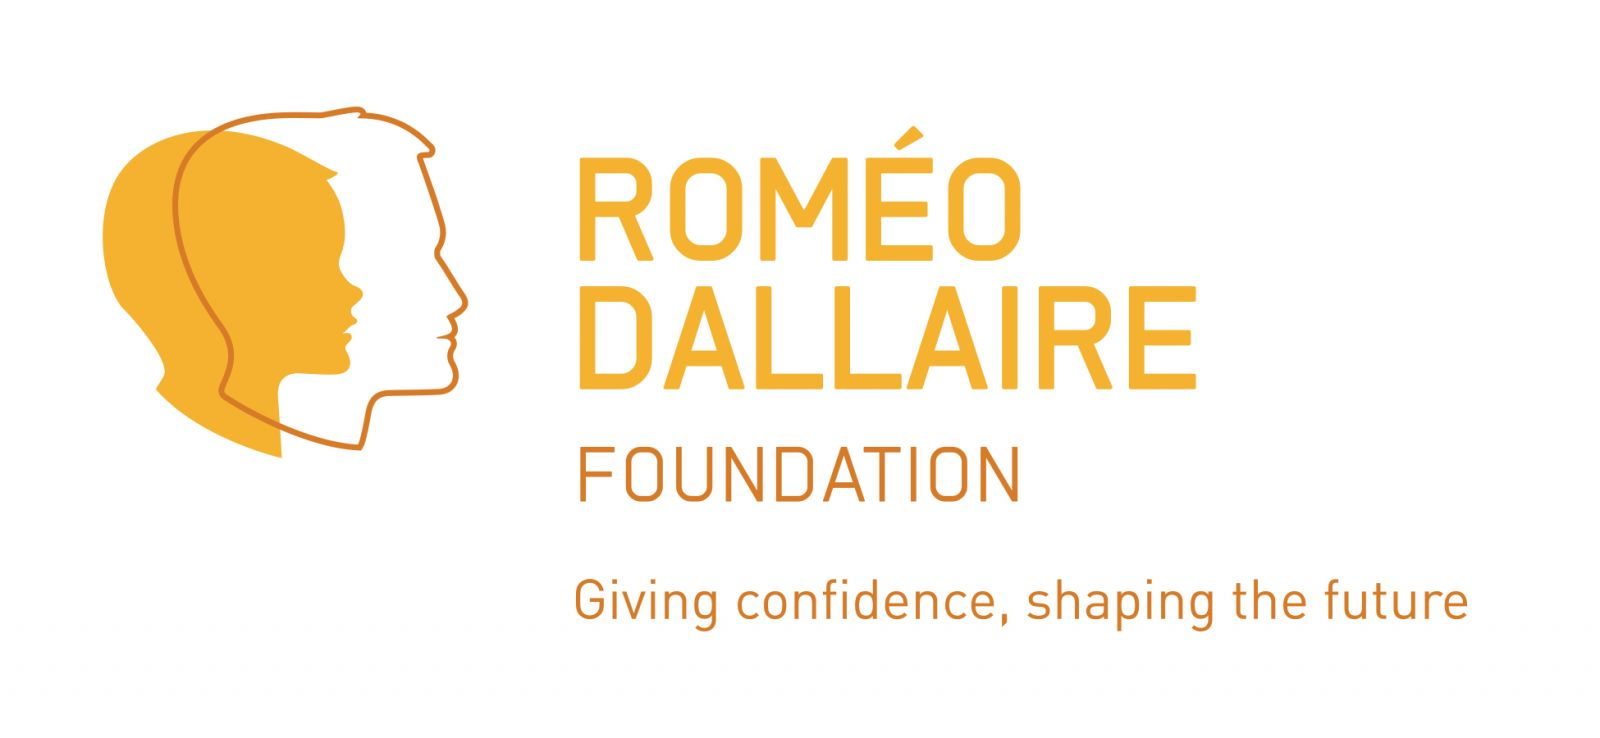 Link to the Romeo Dallaire Foundation website